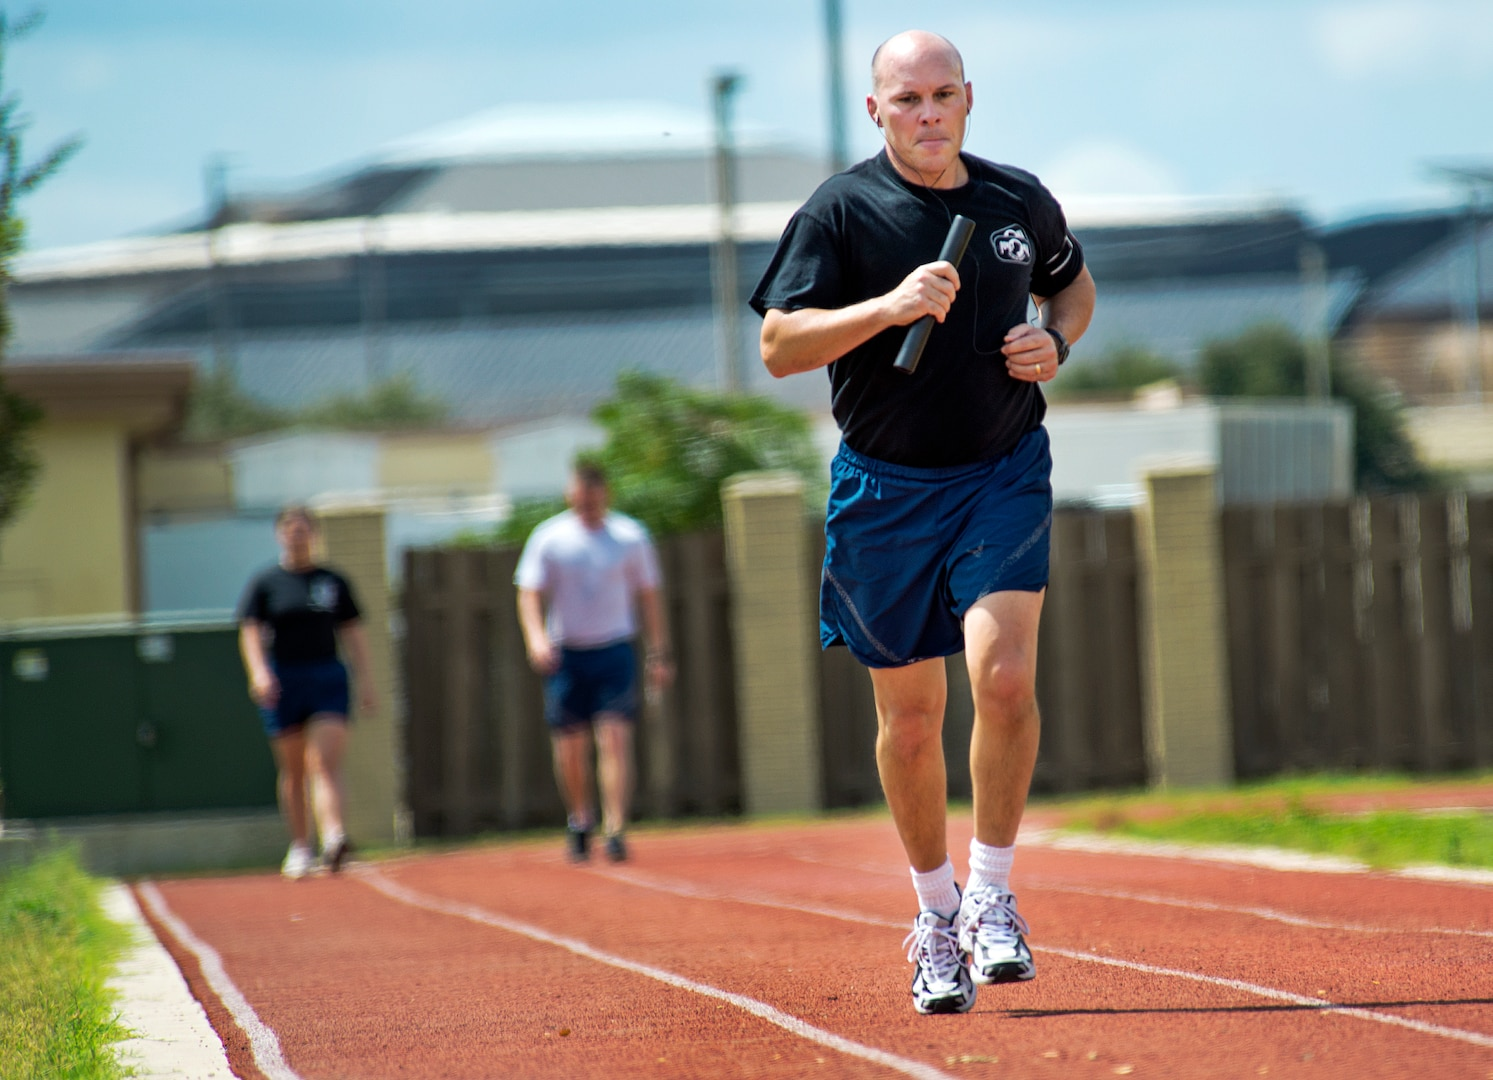 Col. Steve Taylor, Dental Support Squadron commander, runs his leg of the Prisoner of War/Missing in Action relay race September 20, at Joint Base San Antonio-Lackland. The Airman run a 24 hr. relay race which culminates in a baton handoff to awaiting families members of past and present POW/MIA's. (U.S. Air Force photo by Benjamin Faske/released)